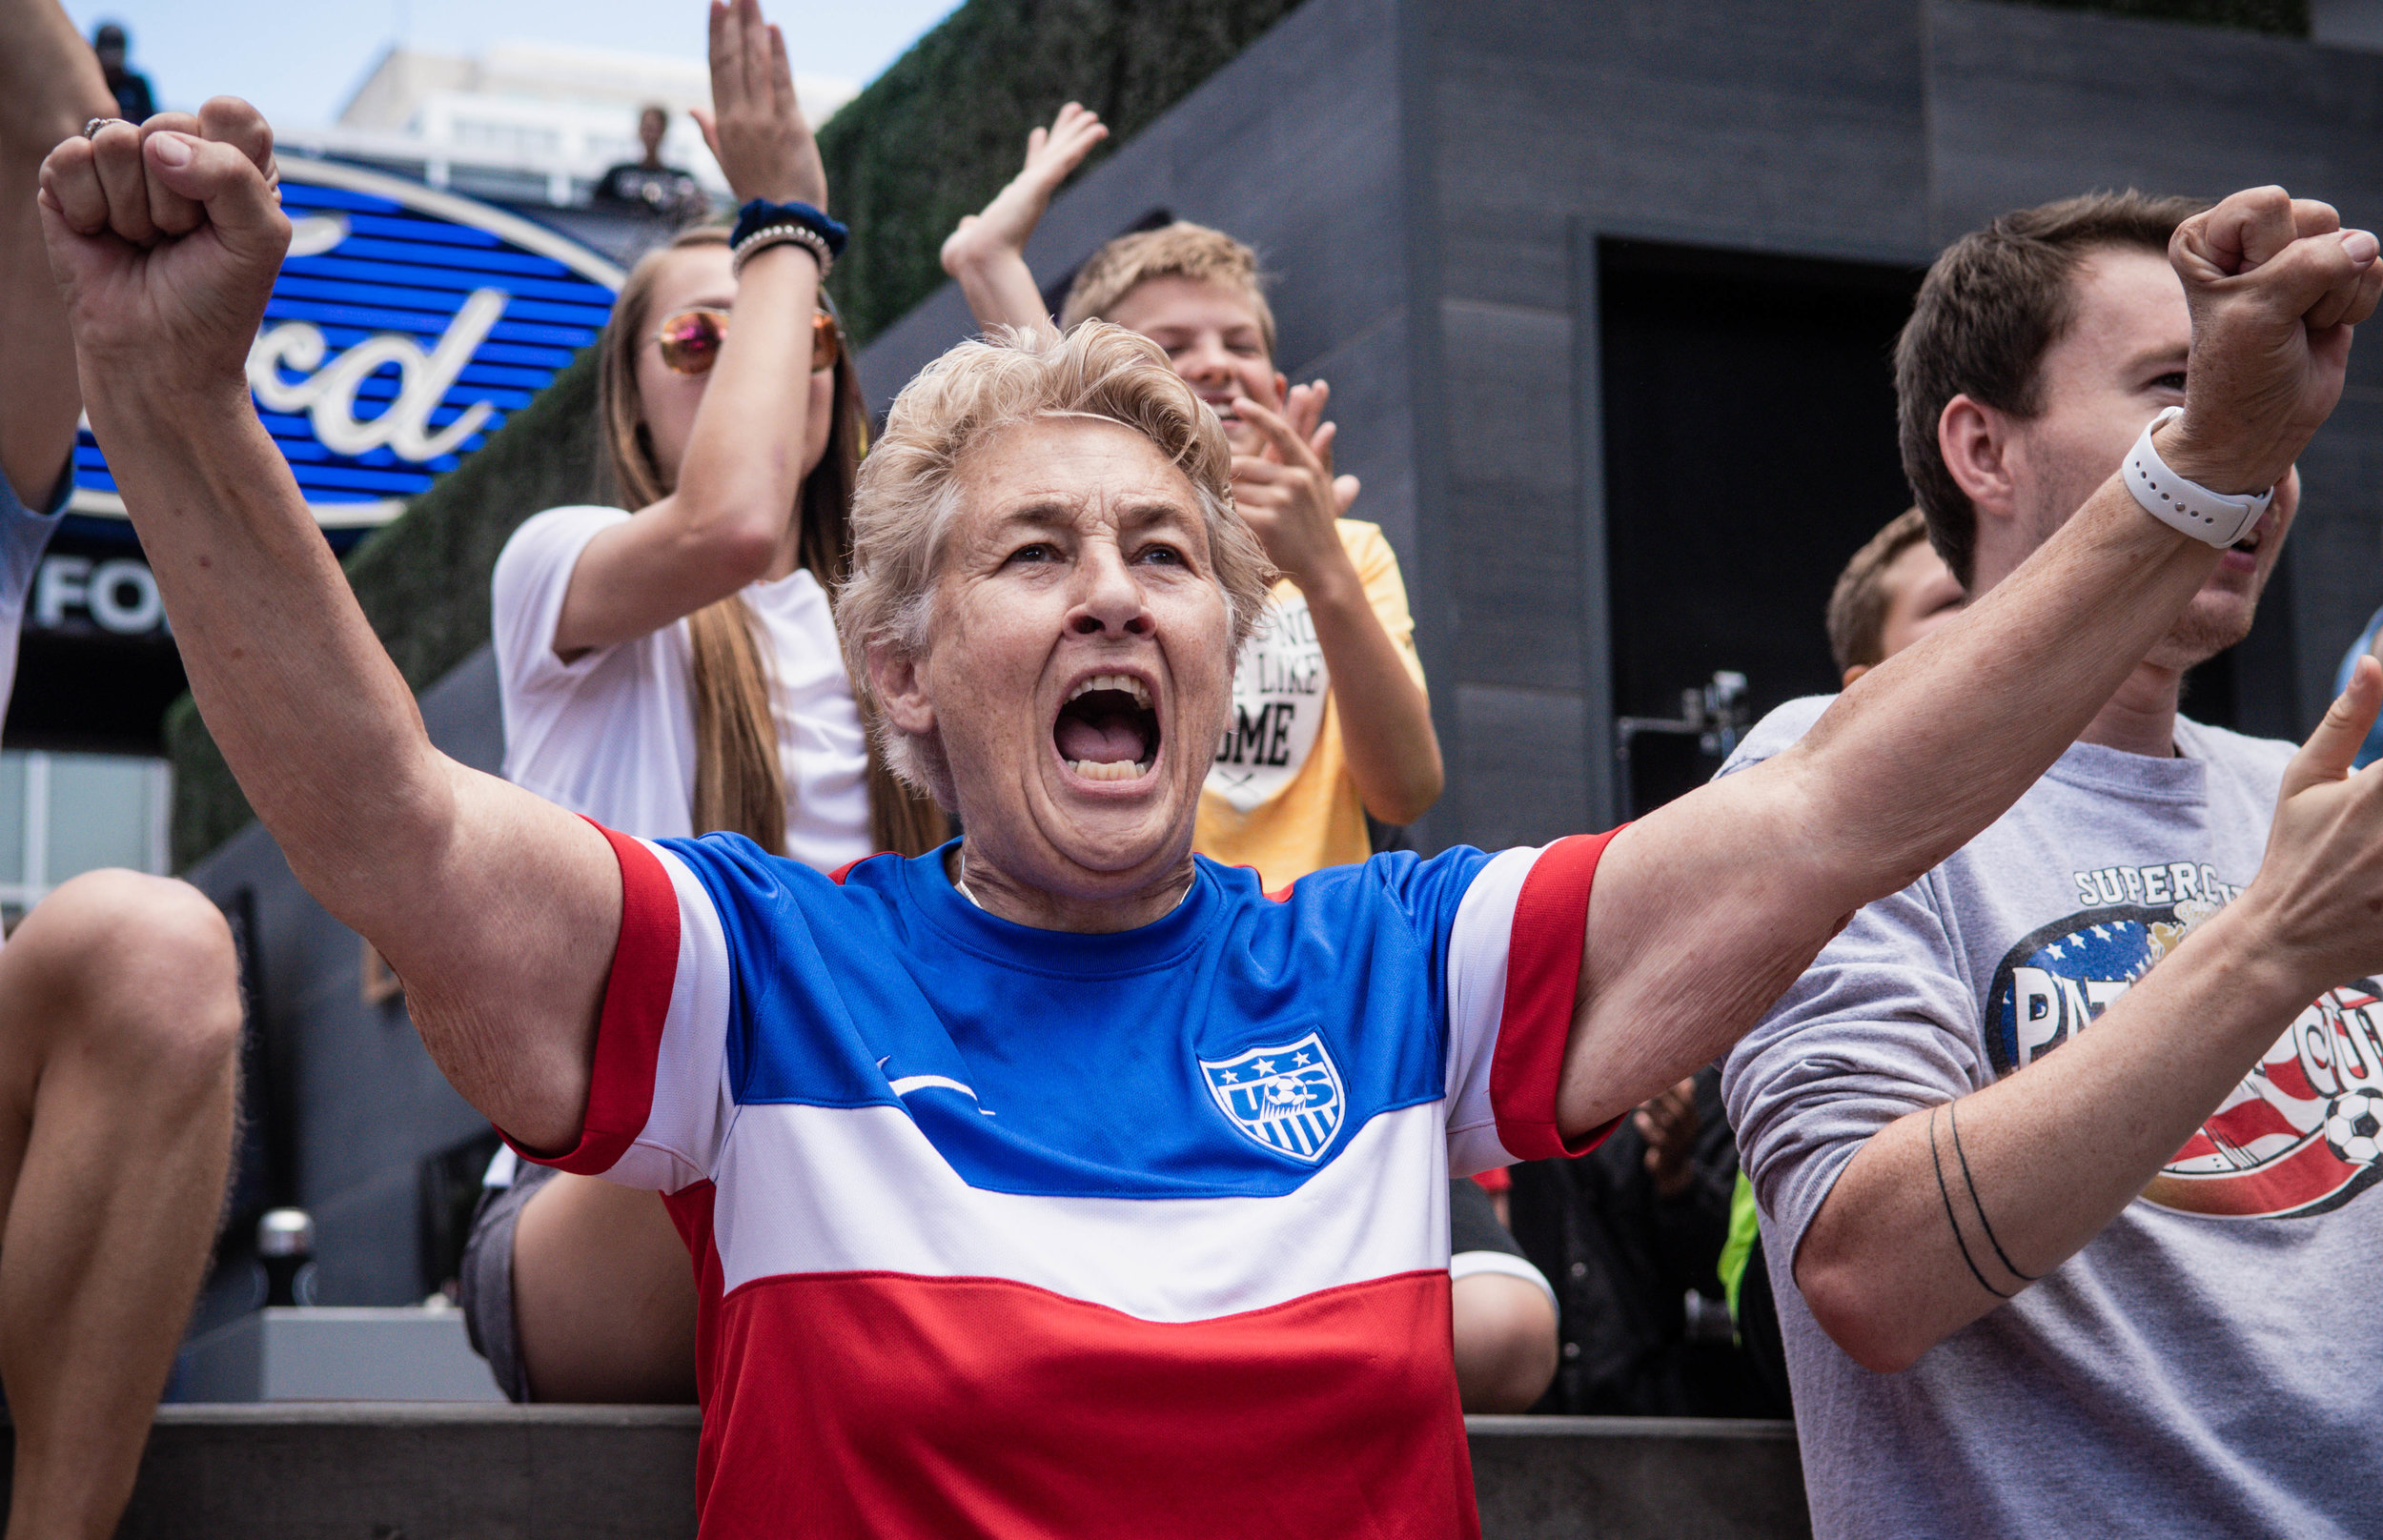 Sporting Kansas City hosts a Women's World Cup watch parties on June 24, 2019, at Kansas City Live! The U.S. Women's National Team continued their run, beating Spain 2-1 and advanced to the quarterfinals. | Photo by: Noah Riffe